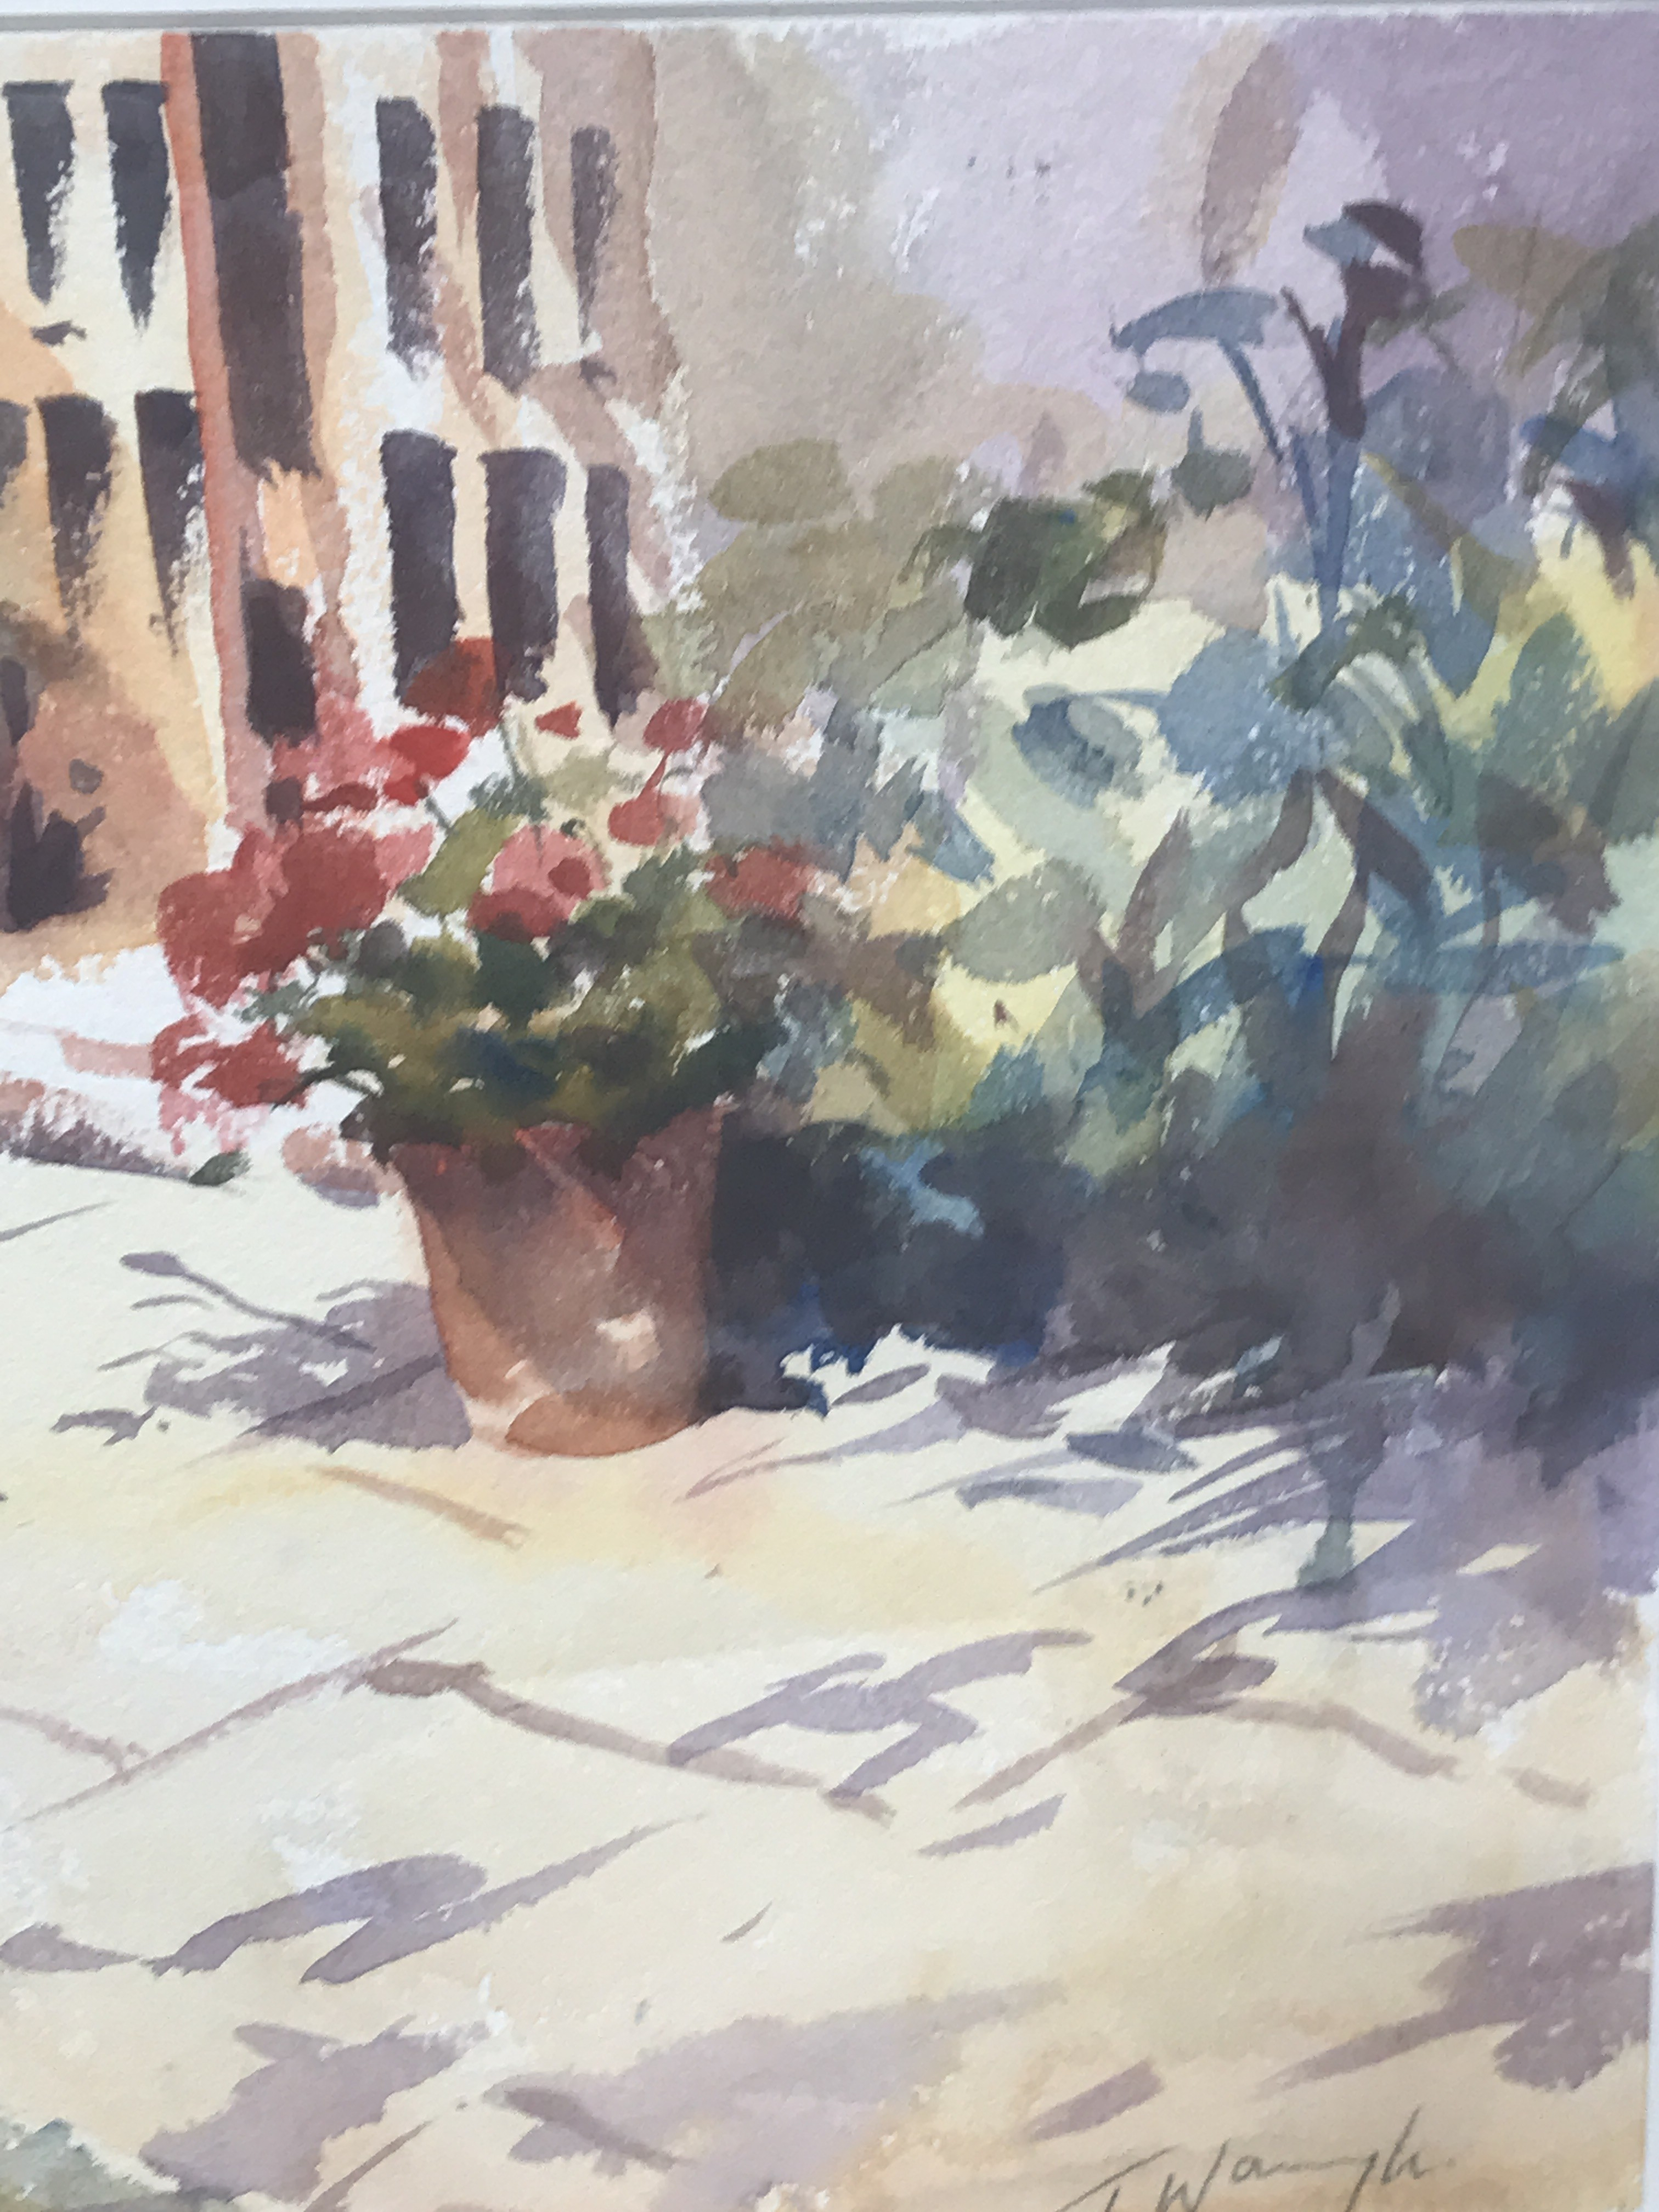 The Old Studio is an original watercolour painting by Trevor Waugh. The impressionistic style and tones of the piece give it a warm, cosy feeling.